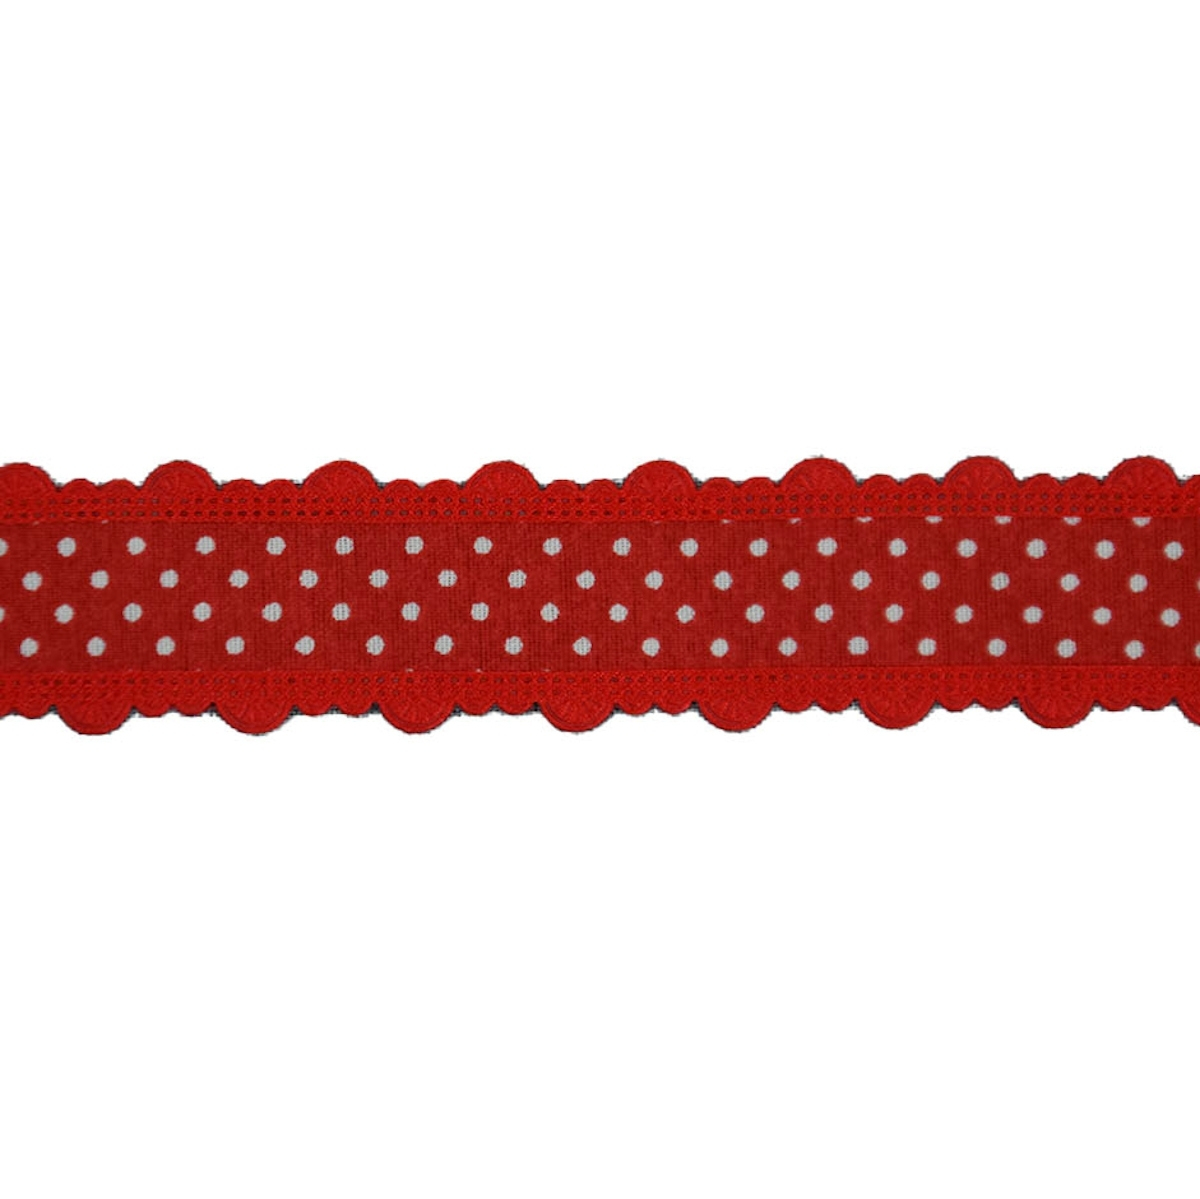 Dots Ribbon with border, red 25 mm